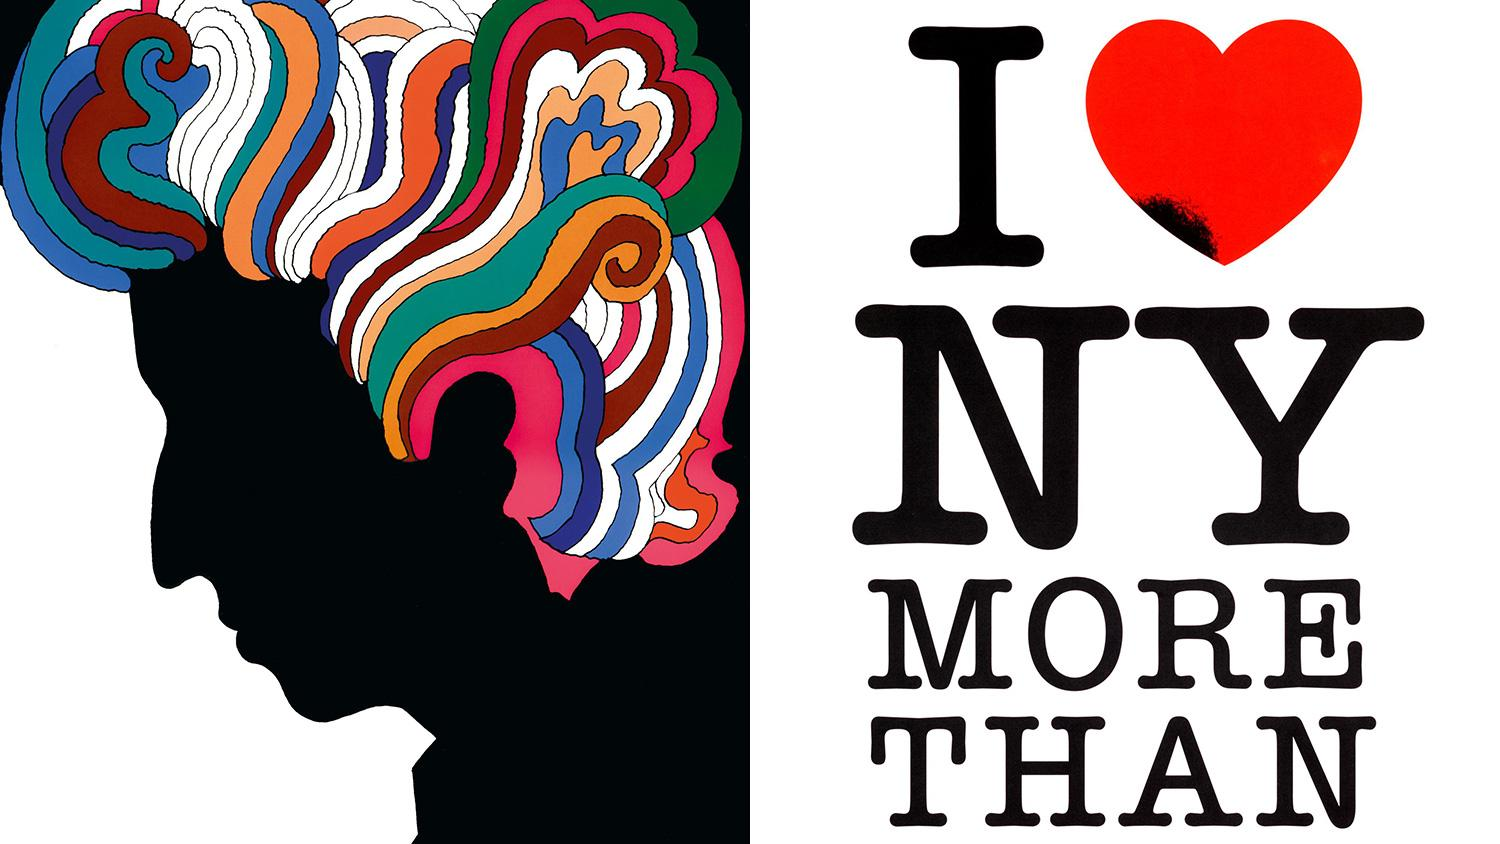 Remembering Milton Glaser's iconic poster designs, including Bob Dylan, I Love New York & more